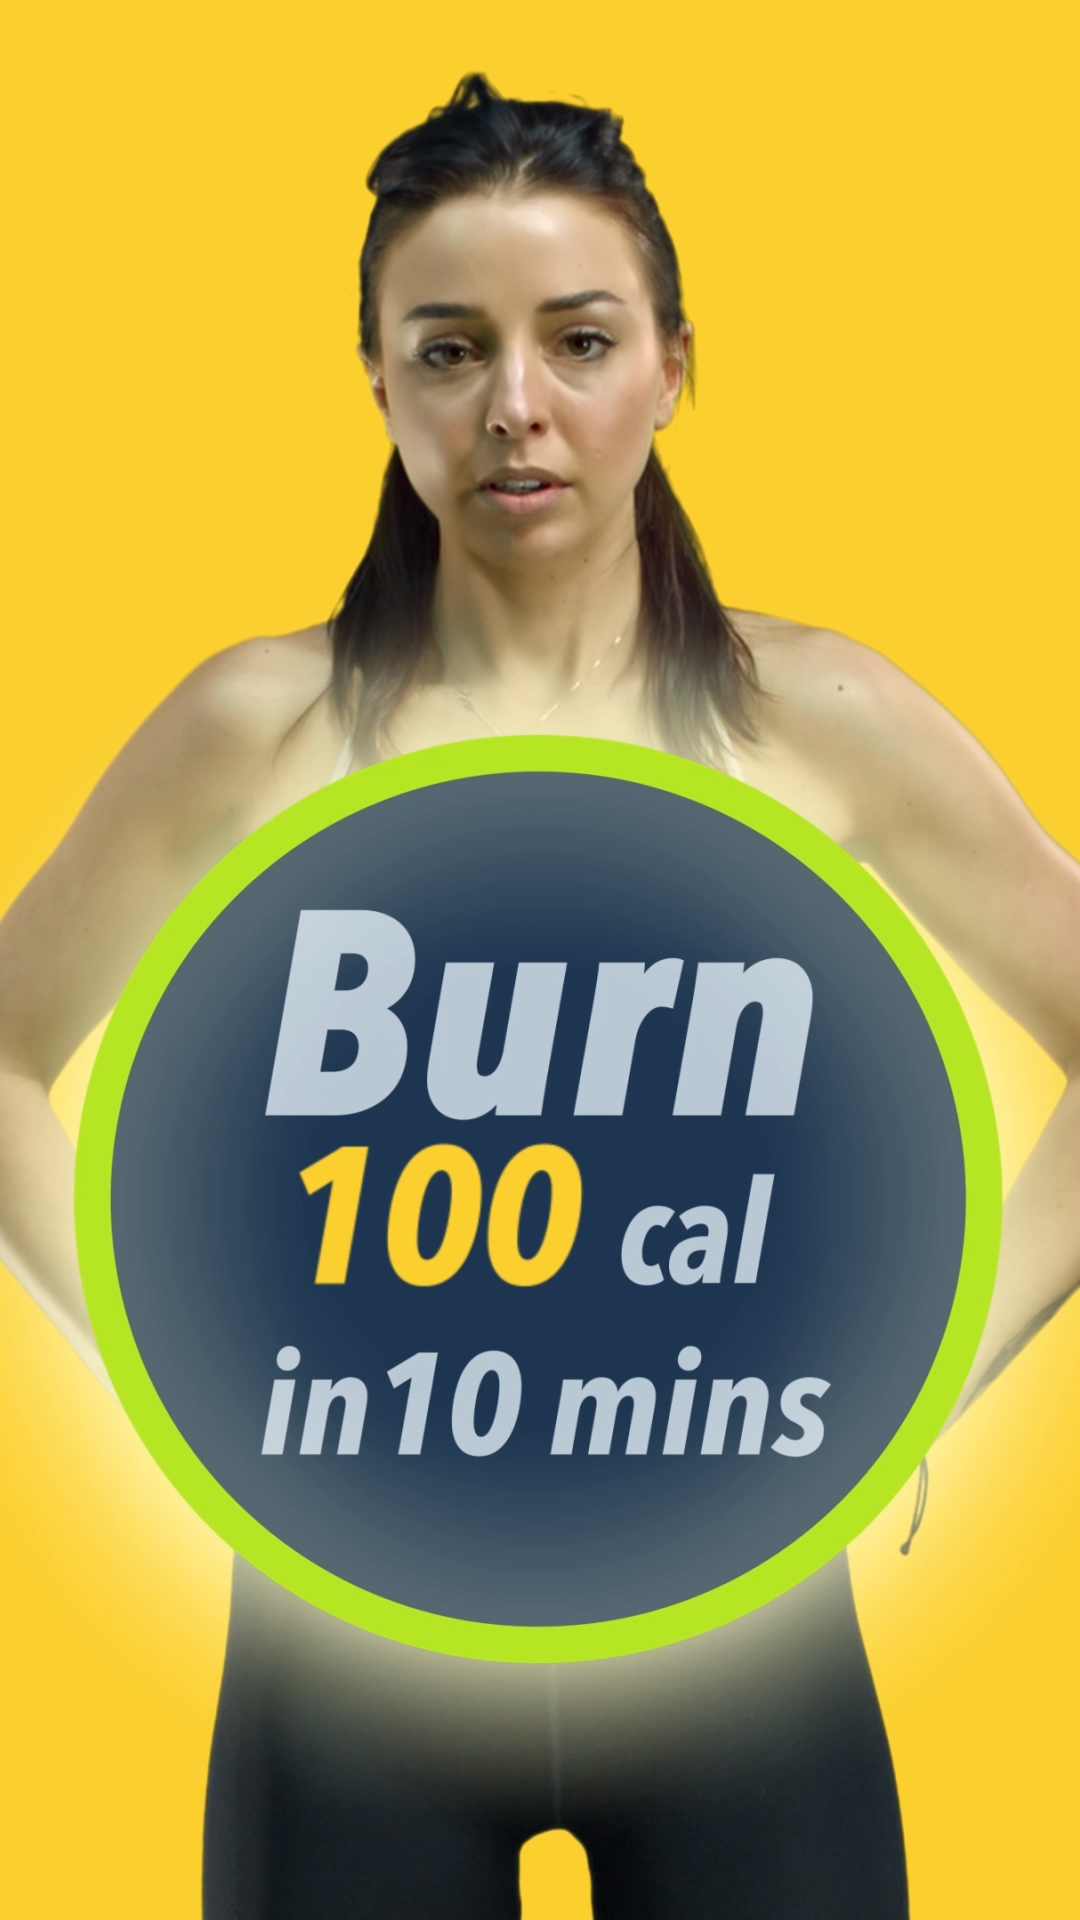 How to Burn 100 Calories in 5 Minutes: The 300 Second Workout #300workout